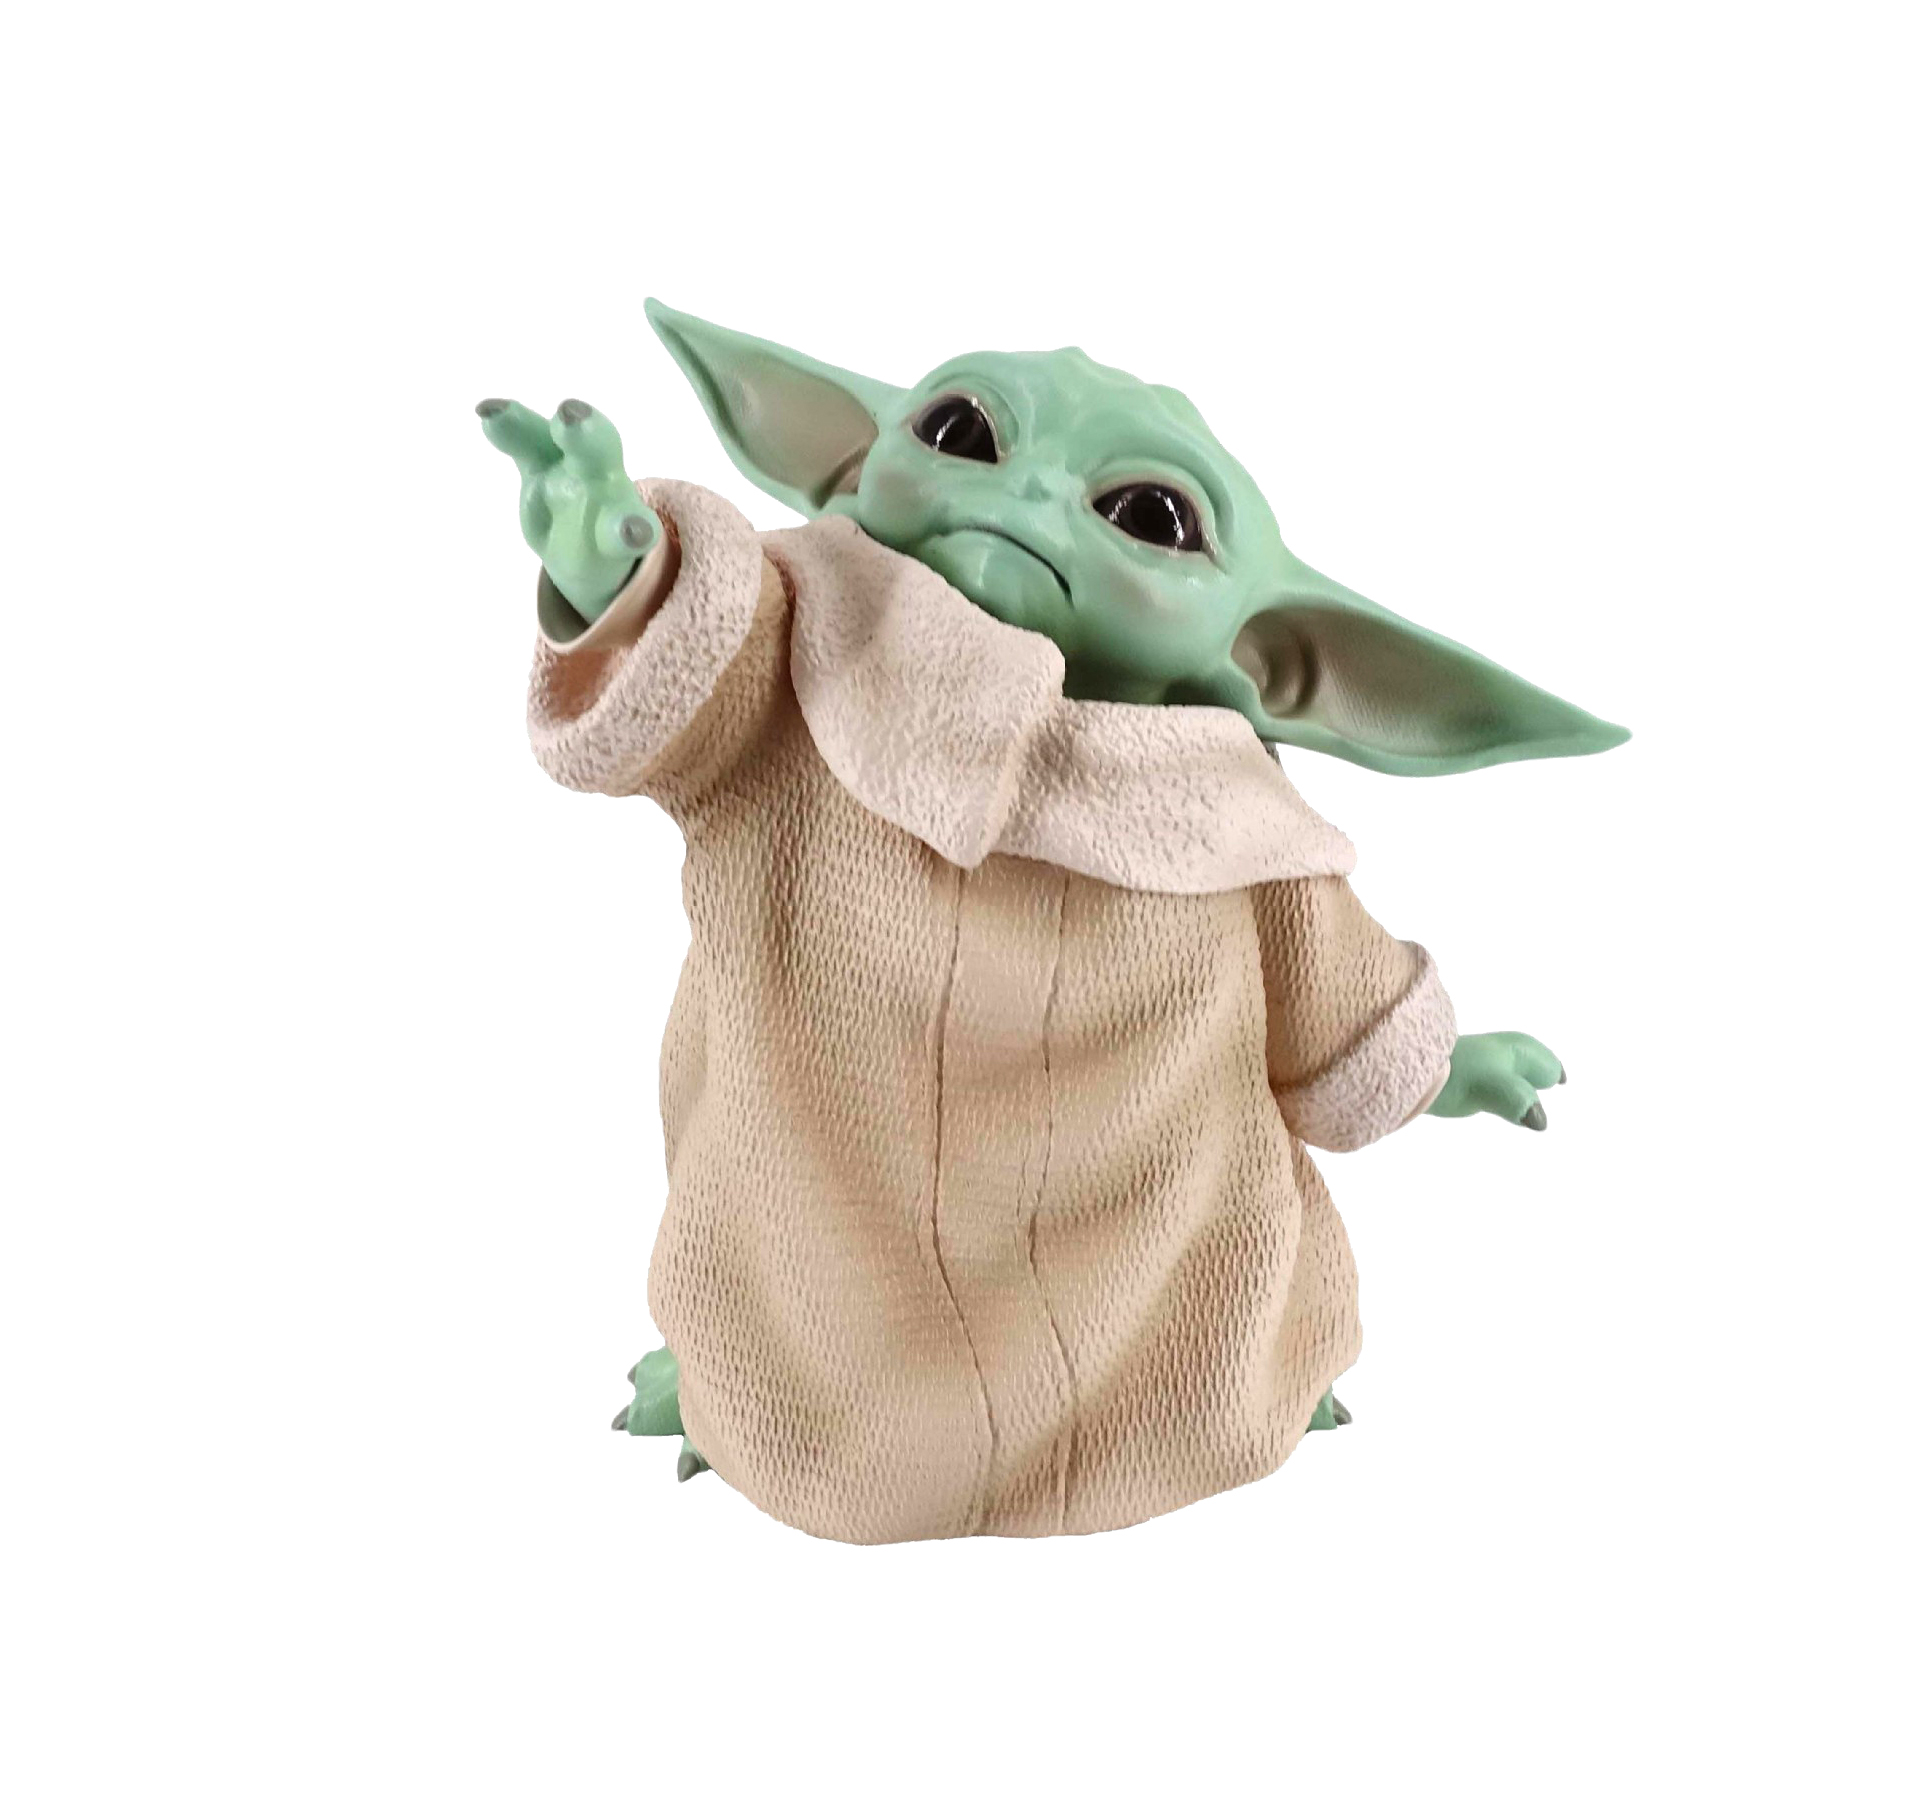 Force Awakens Master Baby Yoda 10cm Action Figure Dolls Toy Gift For Child Adult